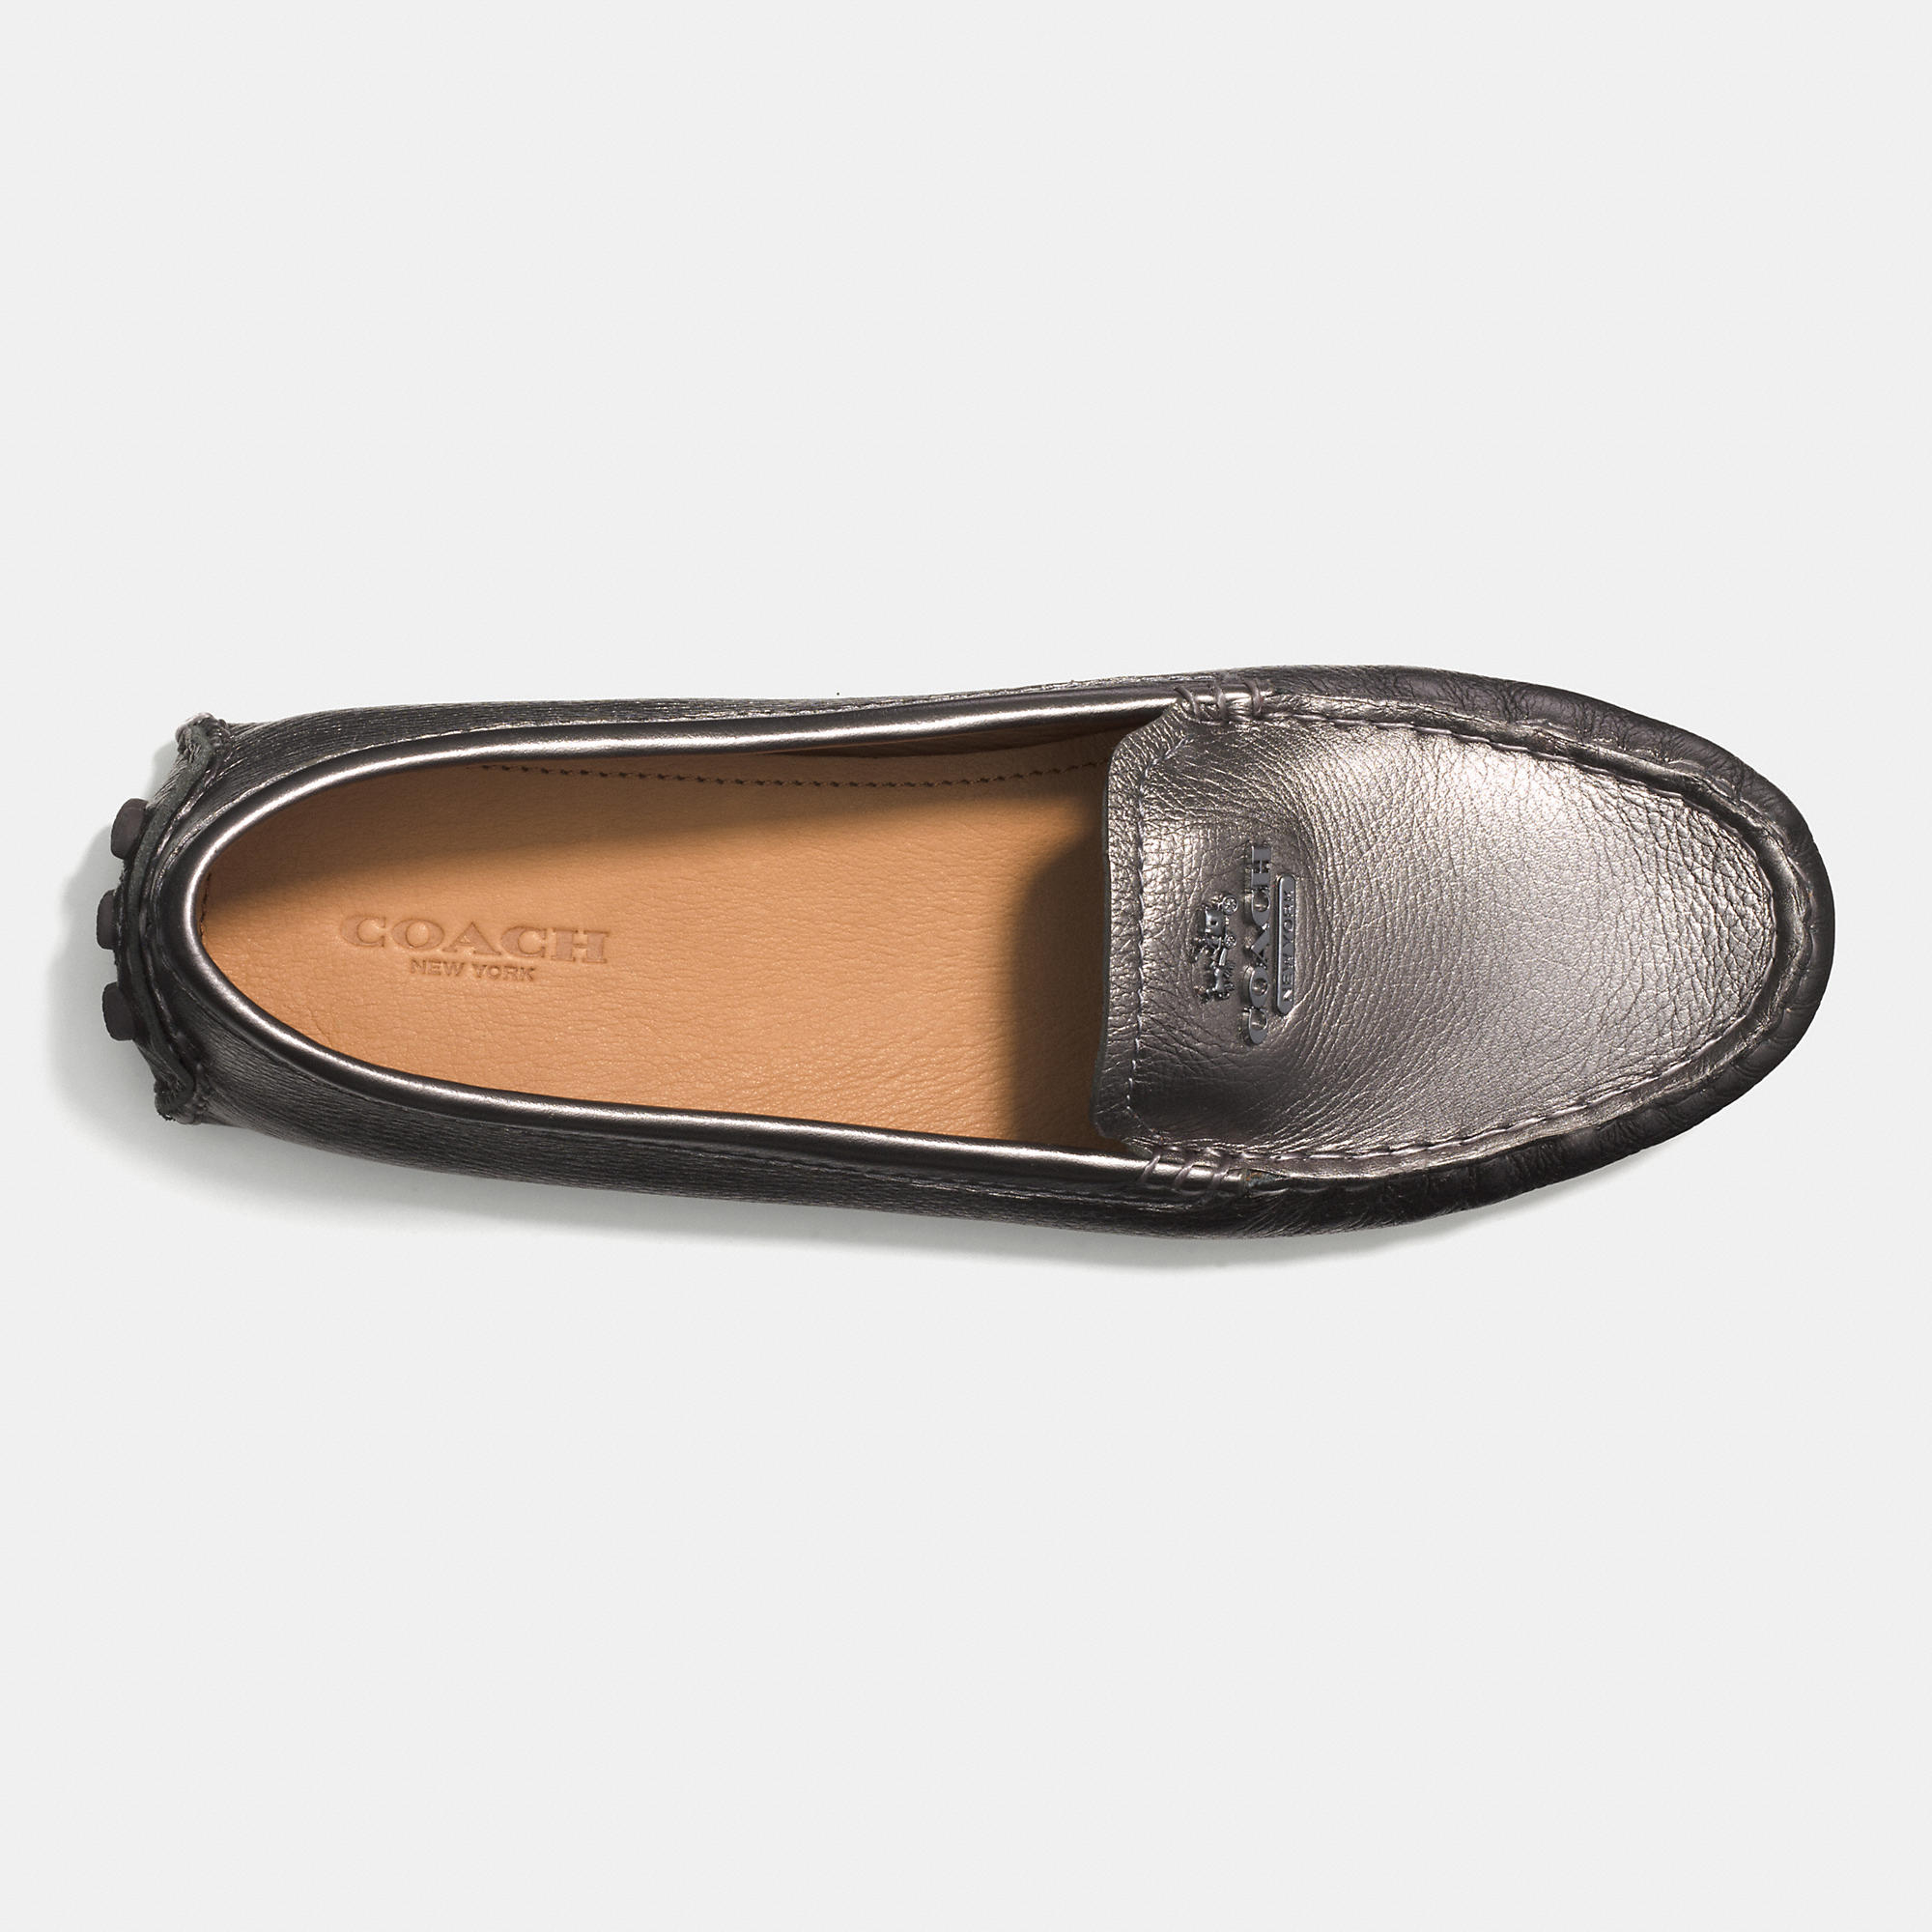 Coach Soft Leather Shoes